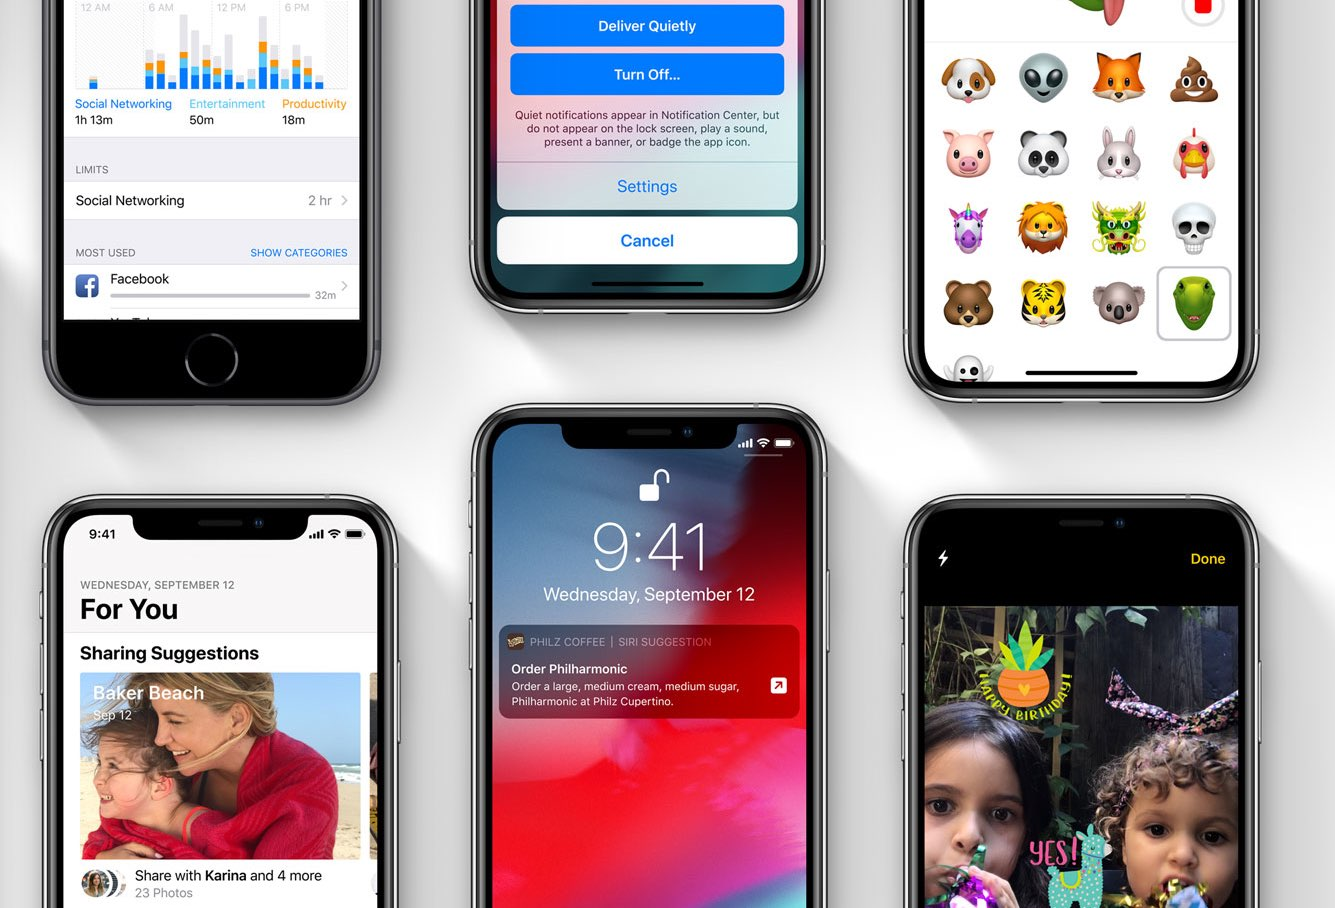 All the new features in iOS 12 and how to use them on your iPhone & iPad